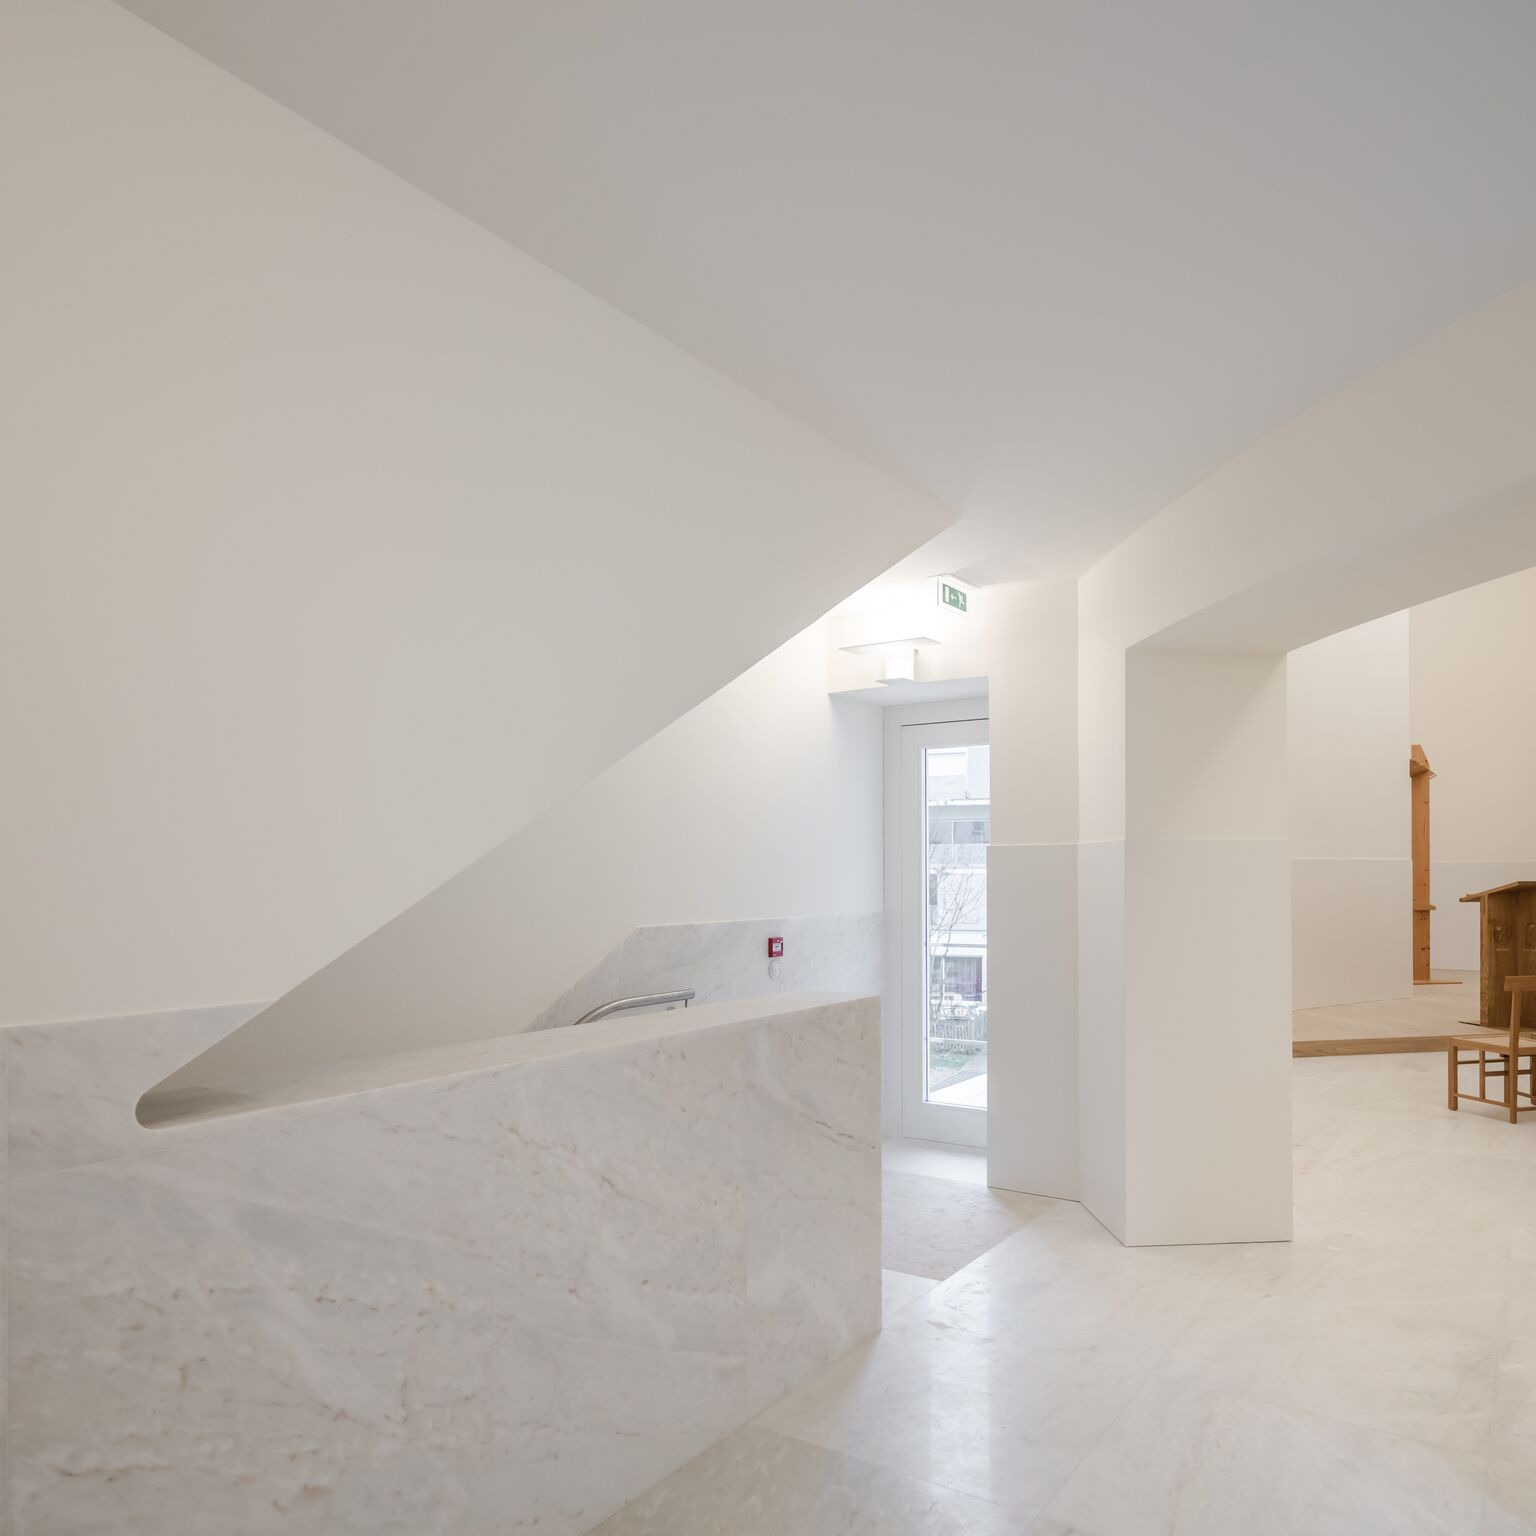 11_Alvaro Siza Vieira_New Church of Saint-Jacques de la Lande_Inspirationist